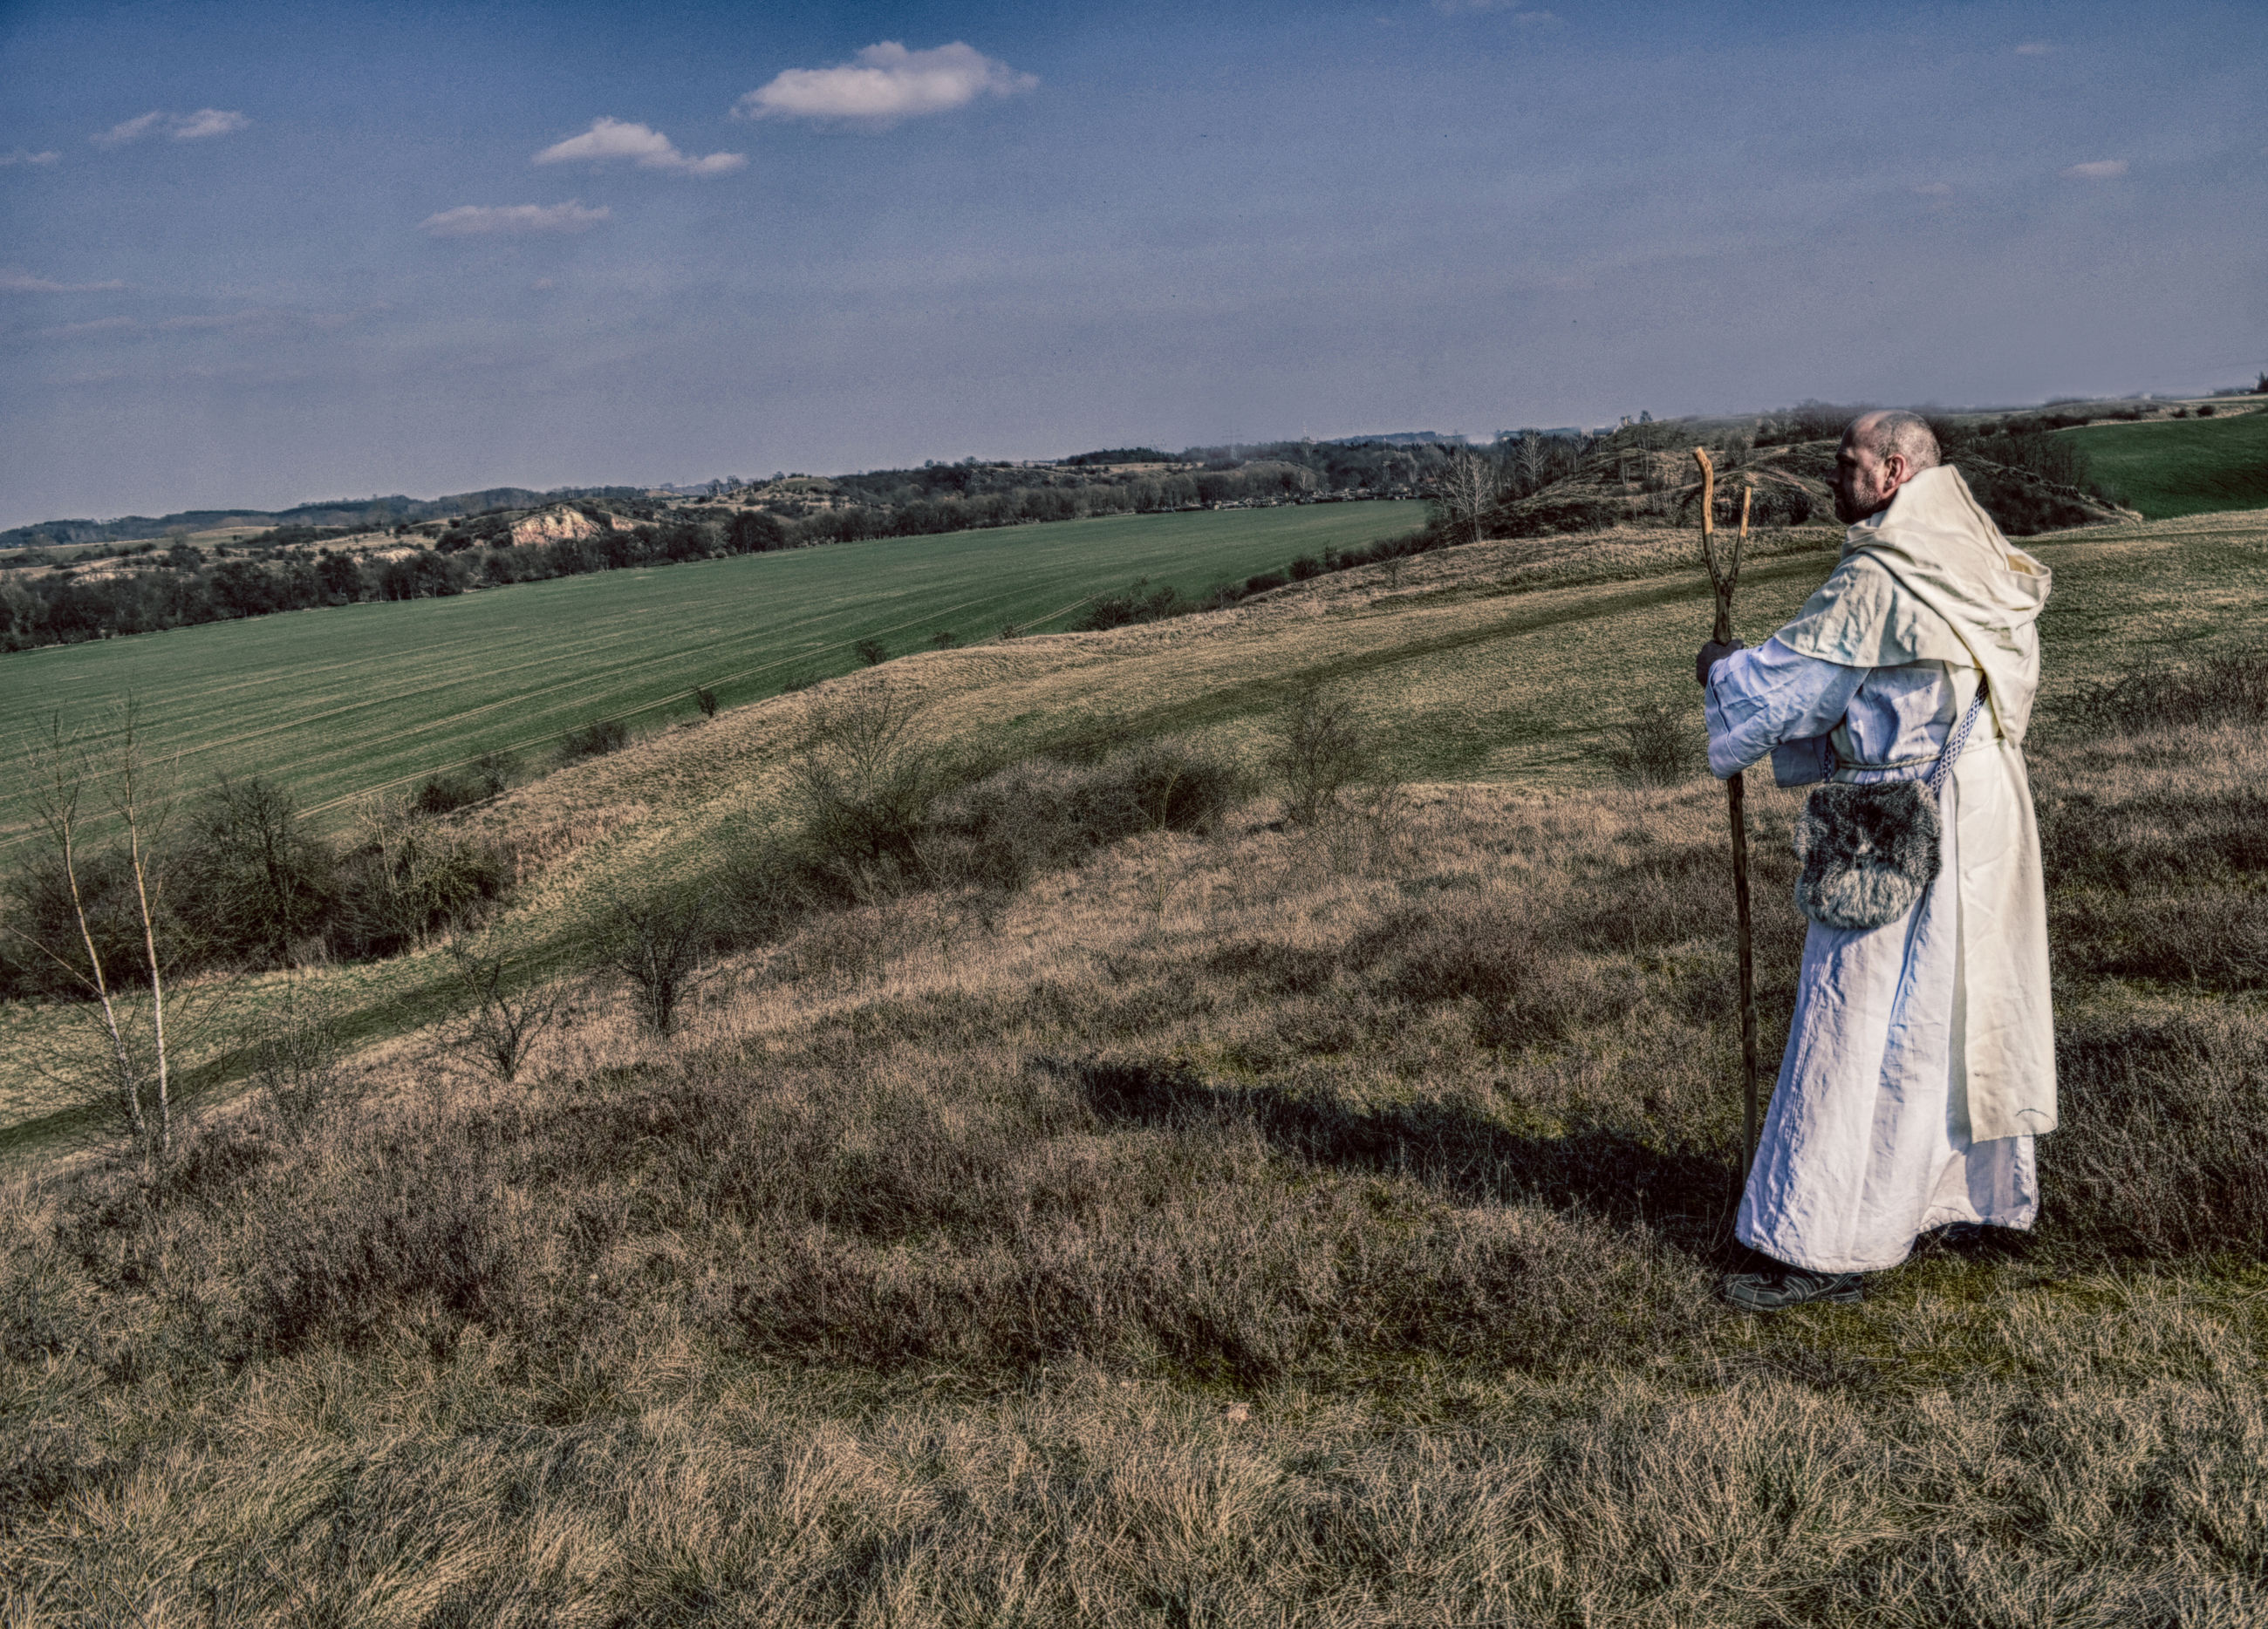 sky, field, land, environment, landscape, grass, one person, plant, nature, real people, full length, adult, scenics - nature, women, clothing, tranquility, beauty in nature, day, non-urban scene, outdoors